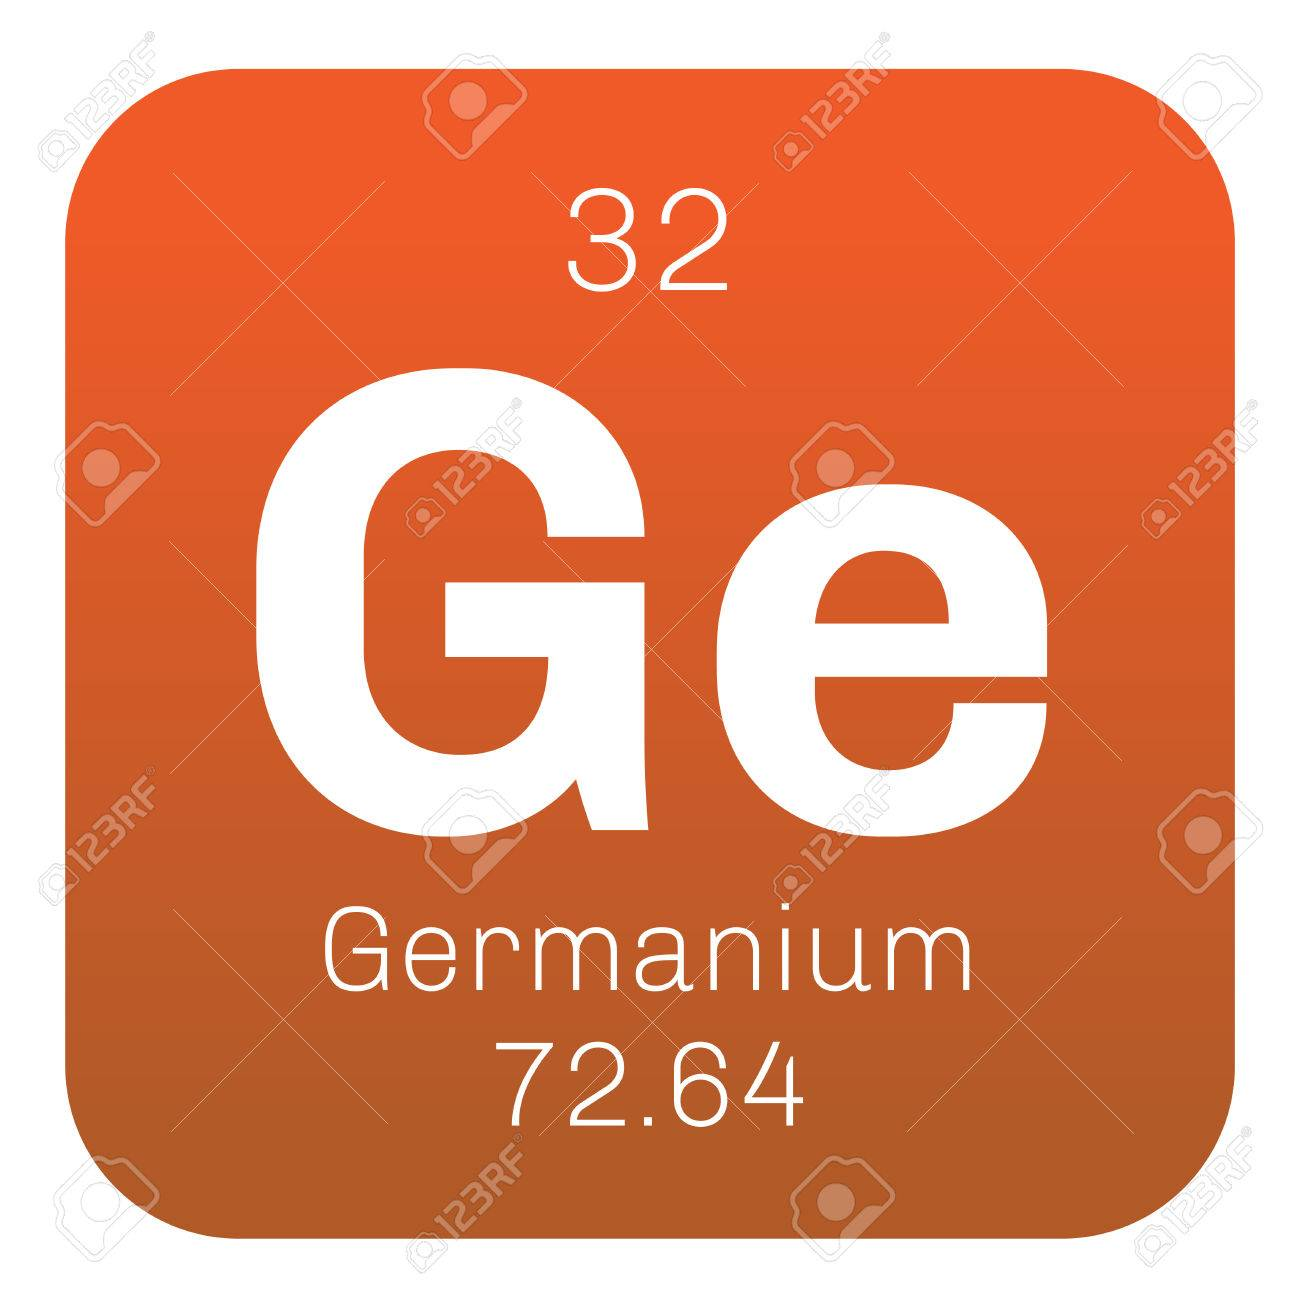 Germanium chemical element metalloid in carbon group a chemical element of periodic table germanium chemical element metalloid in carbon group a semiconductor colored icon with atomic gamestrikefo Images